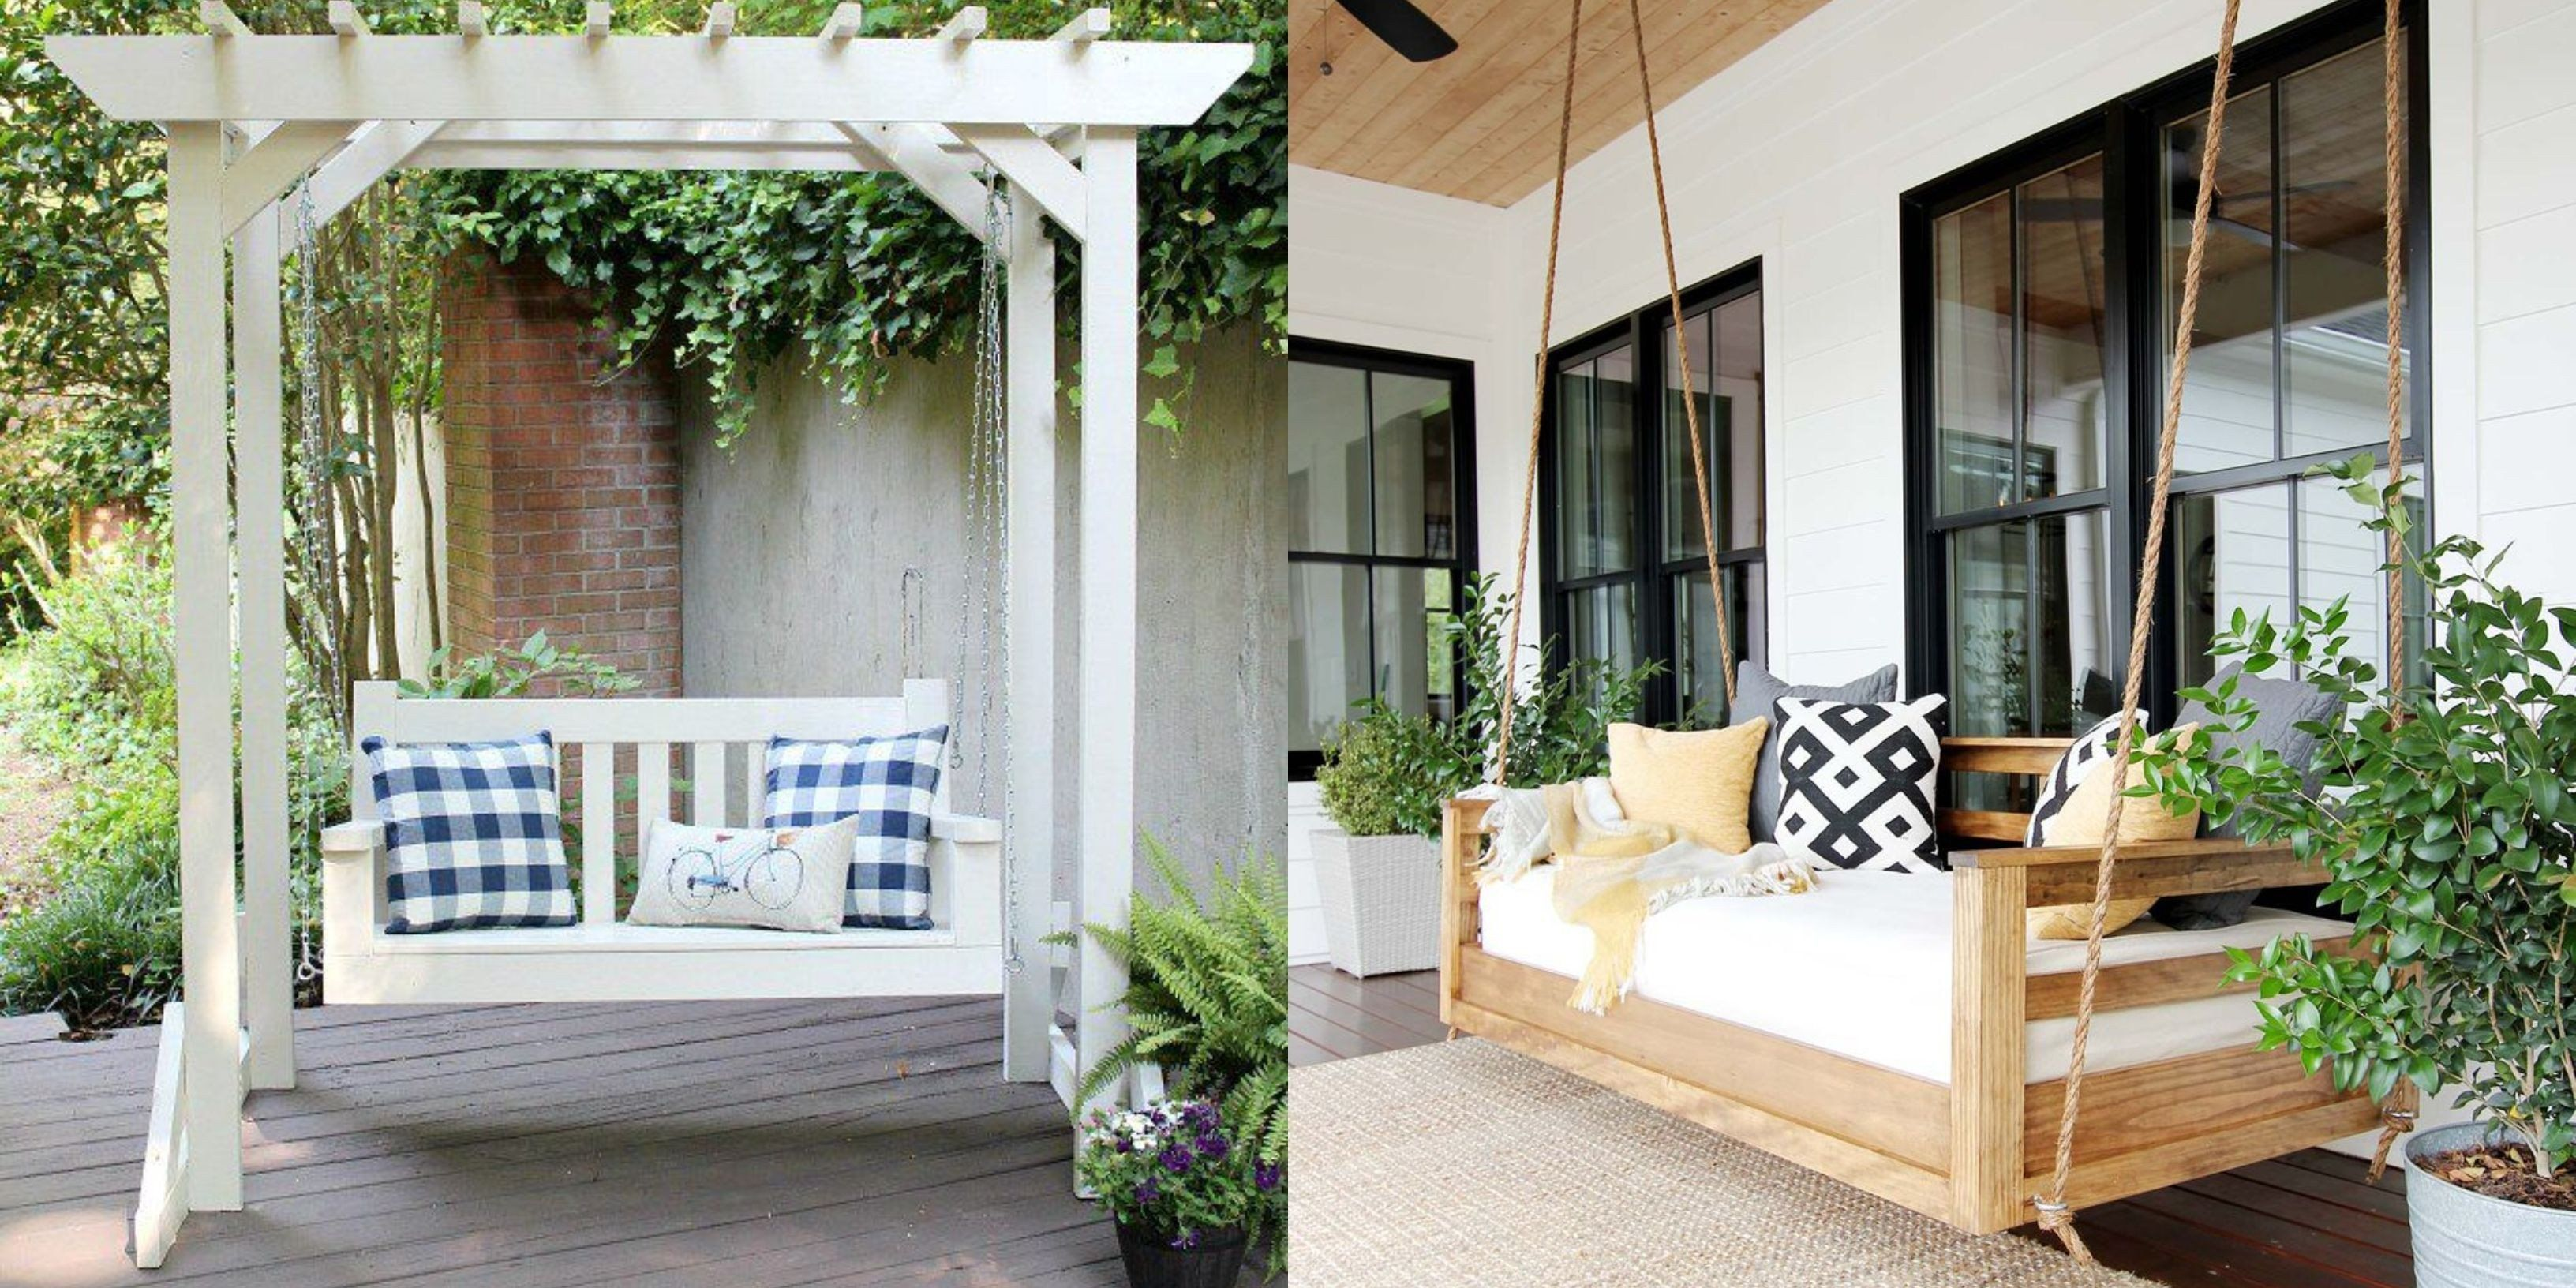 Diy Front Porch Ideas Awesome 20 Porch Swing Plans Diy Porch Swing Hanging Porch Swing Porch Swing Plans Outdoor Porch Bed